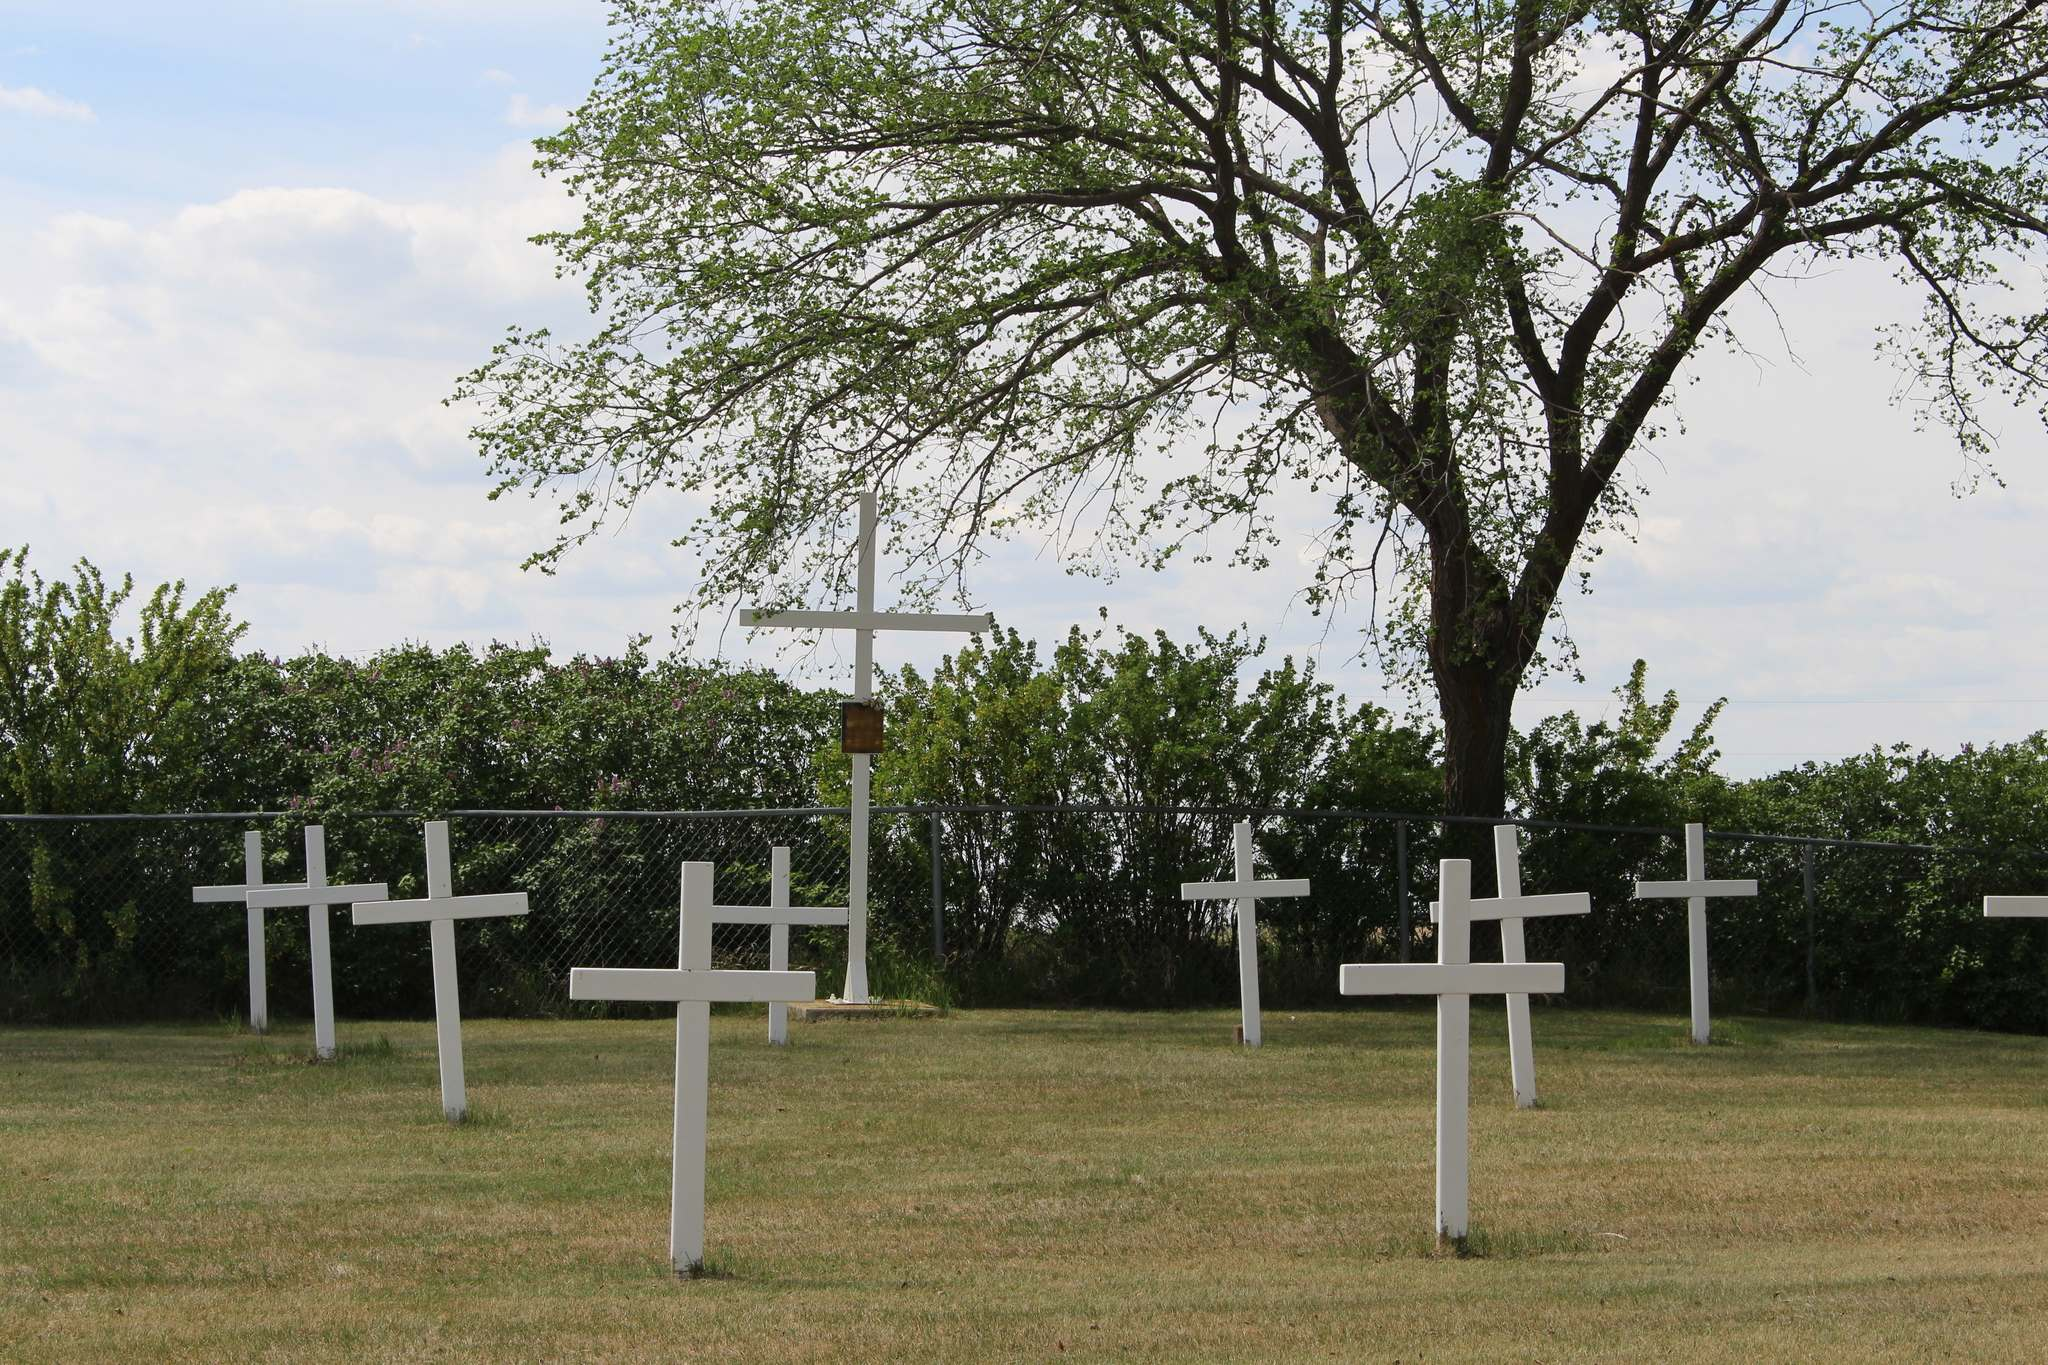 RYAN THORPE / WINNIPEG FREE PRESS</p><p>The cemetery for victims of the residential school in Elkhorn. It is located on the outskirts of the town and is a unique example of a residential school burial ground that has actually been properly maintained. </p></p>